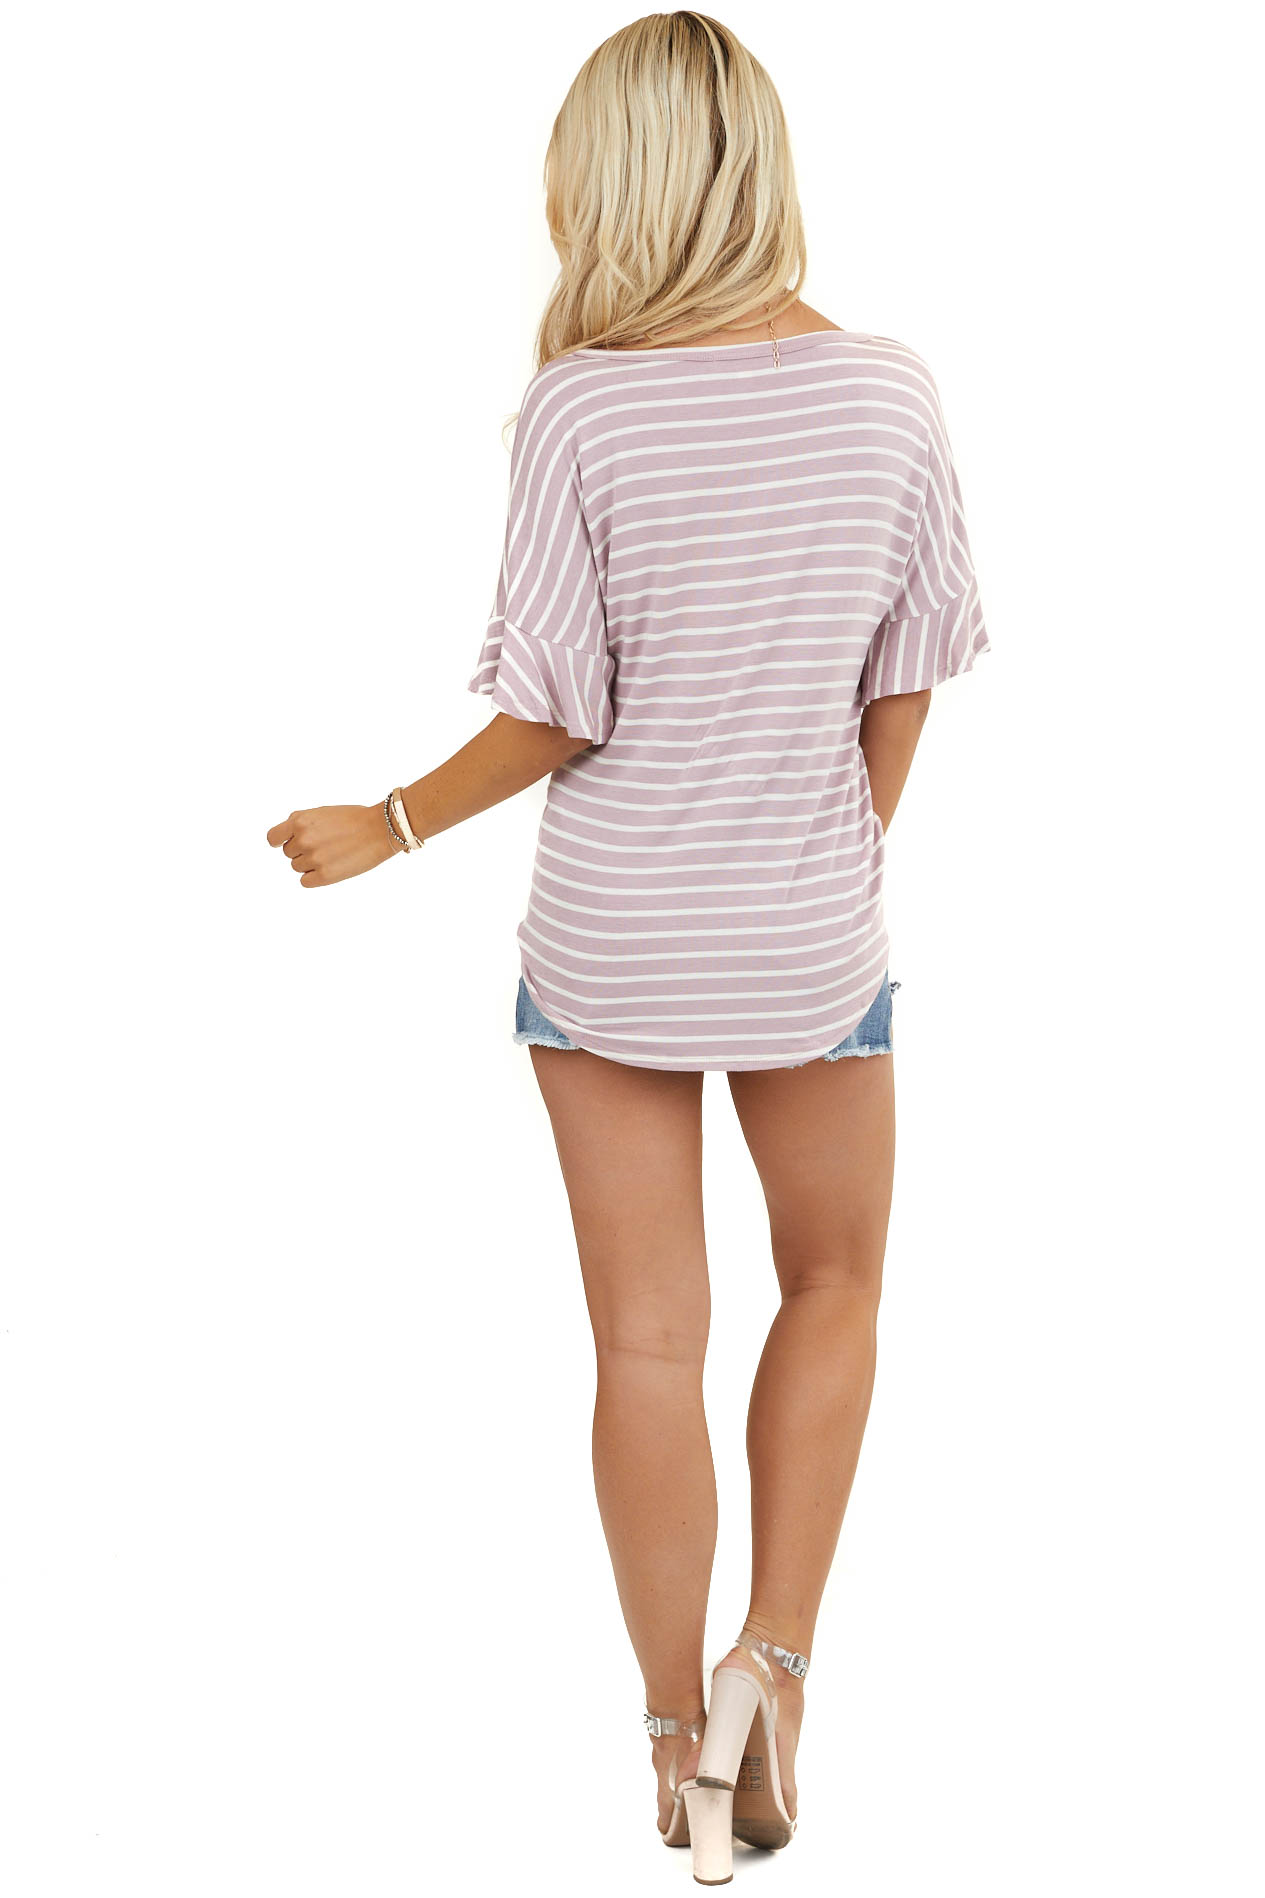 Lavender and Ivory Striped Top with Ruffle Sleeve and Knot